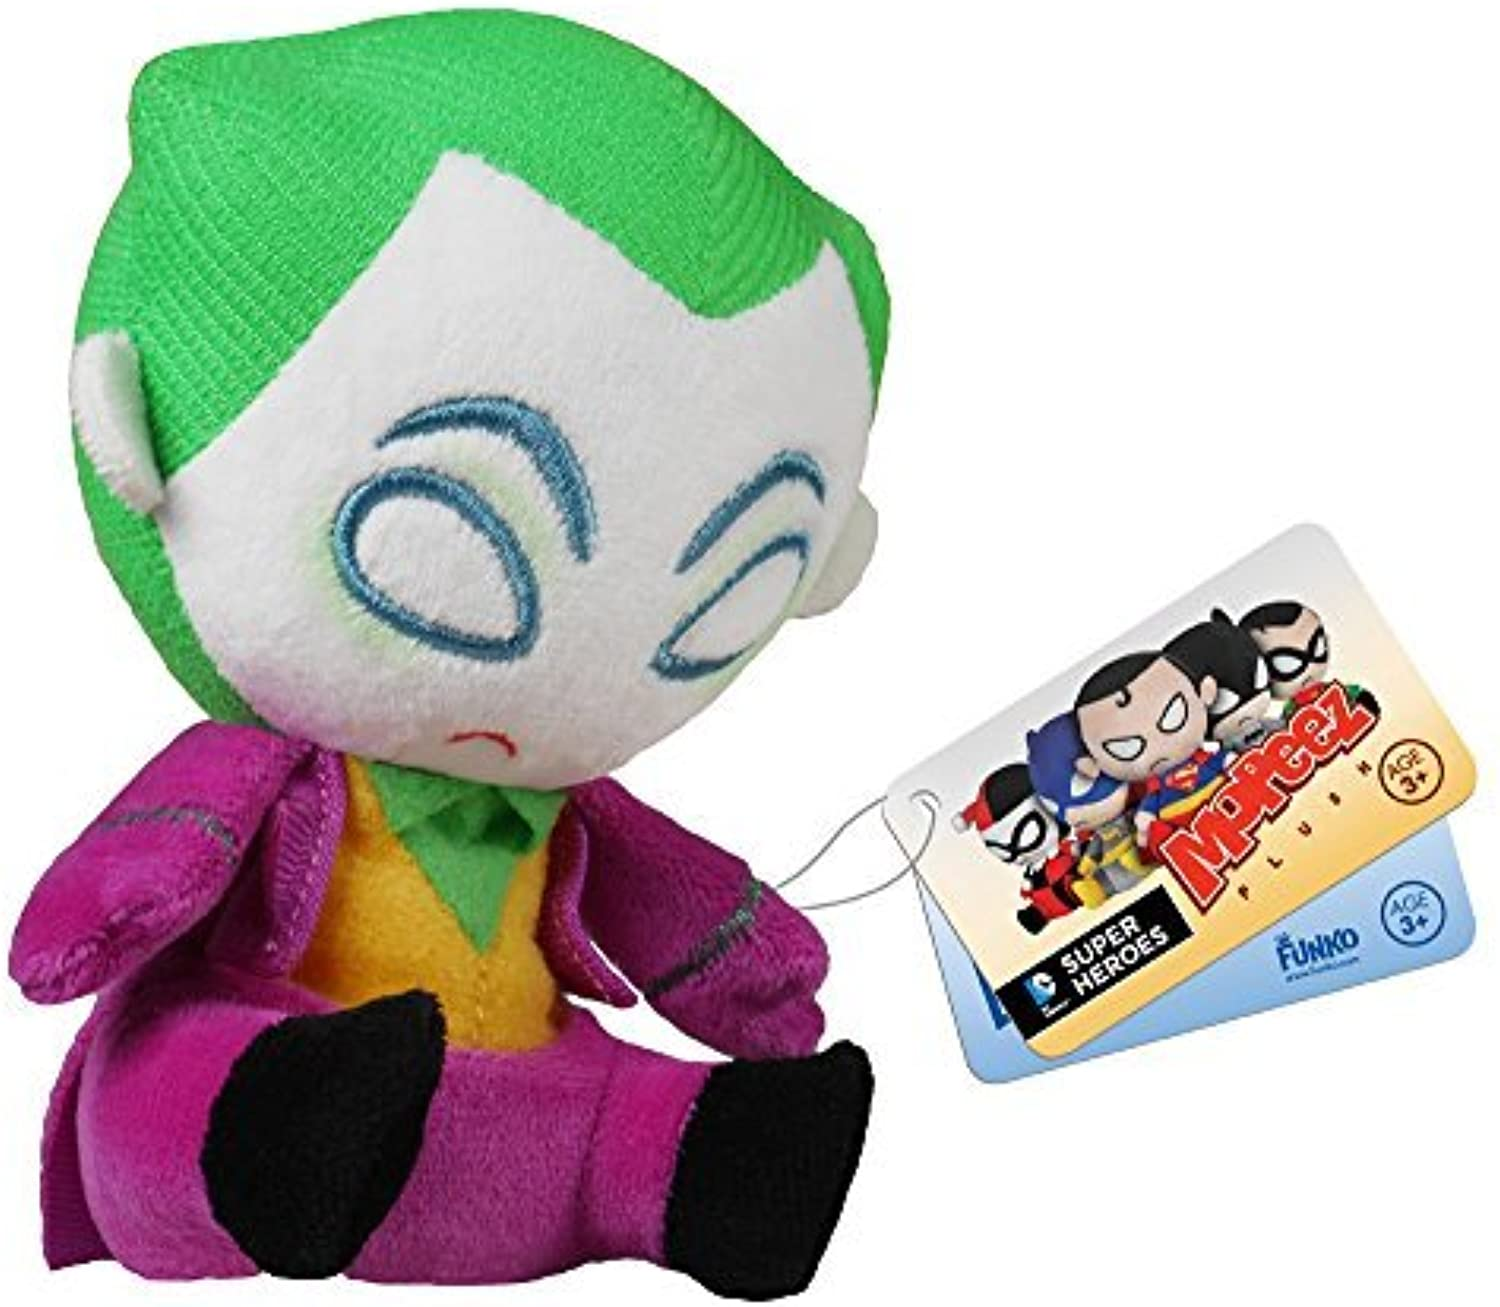 DC Comics Mopeez Joker 4.5 by DC Comics